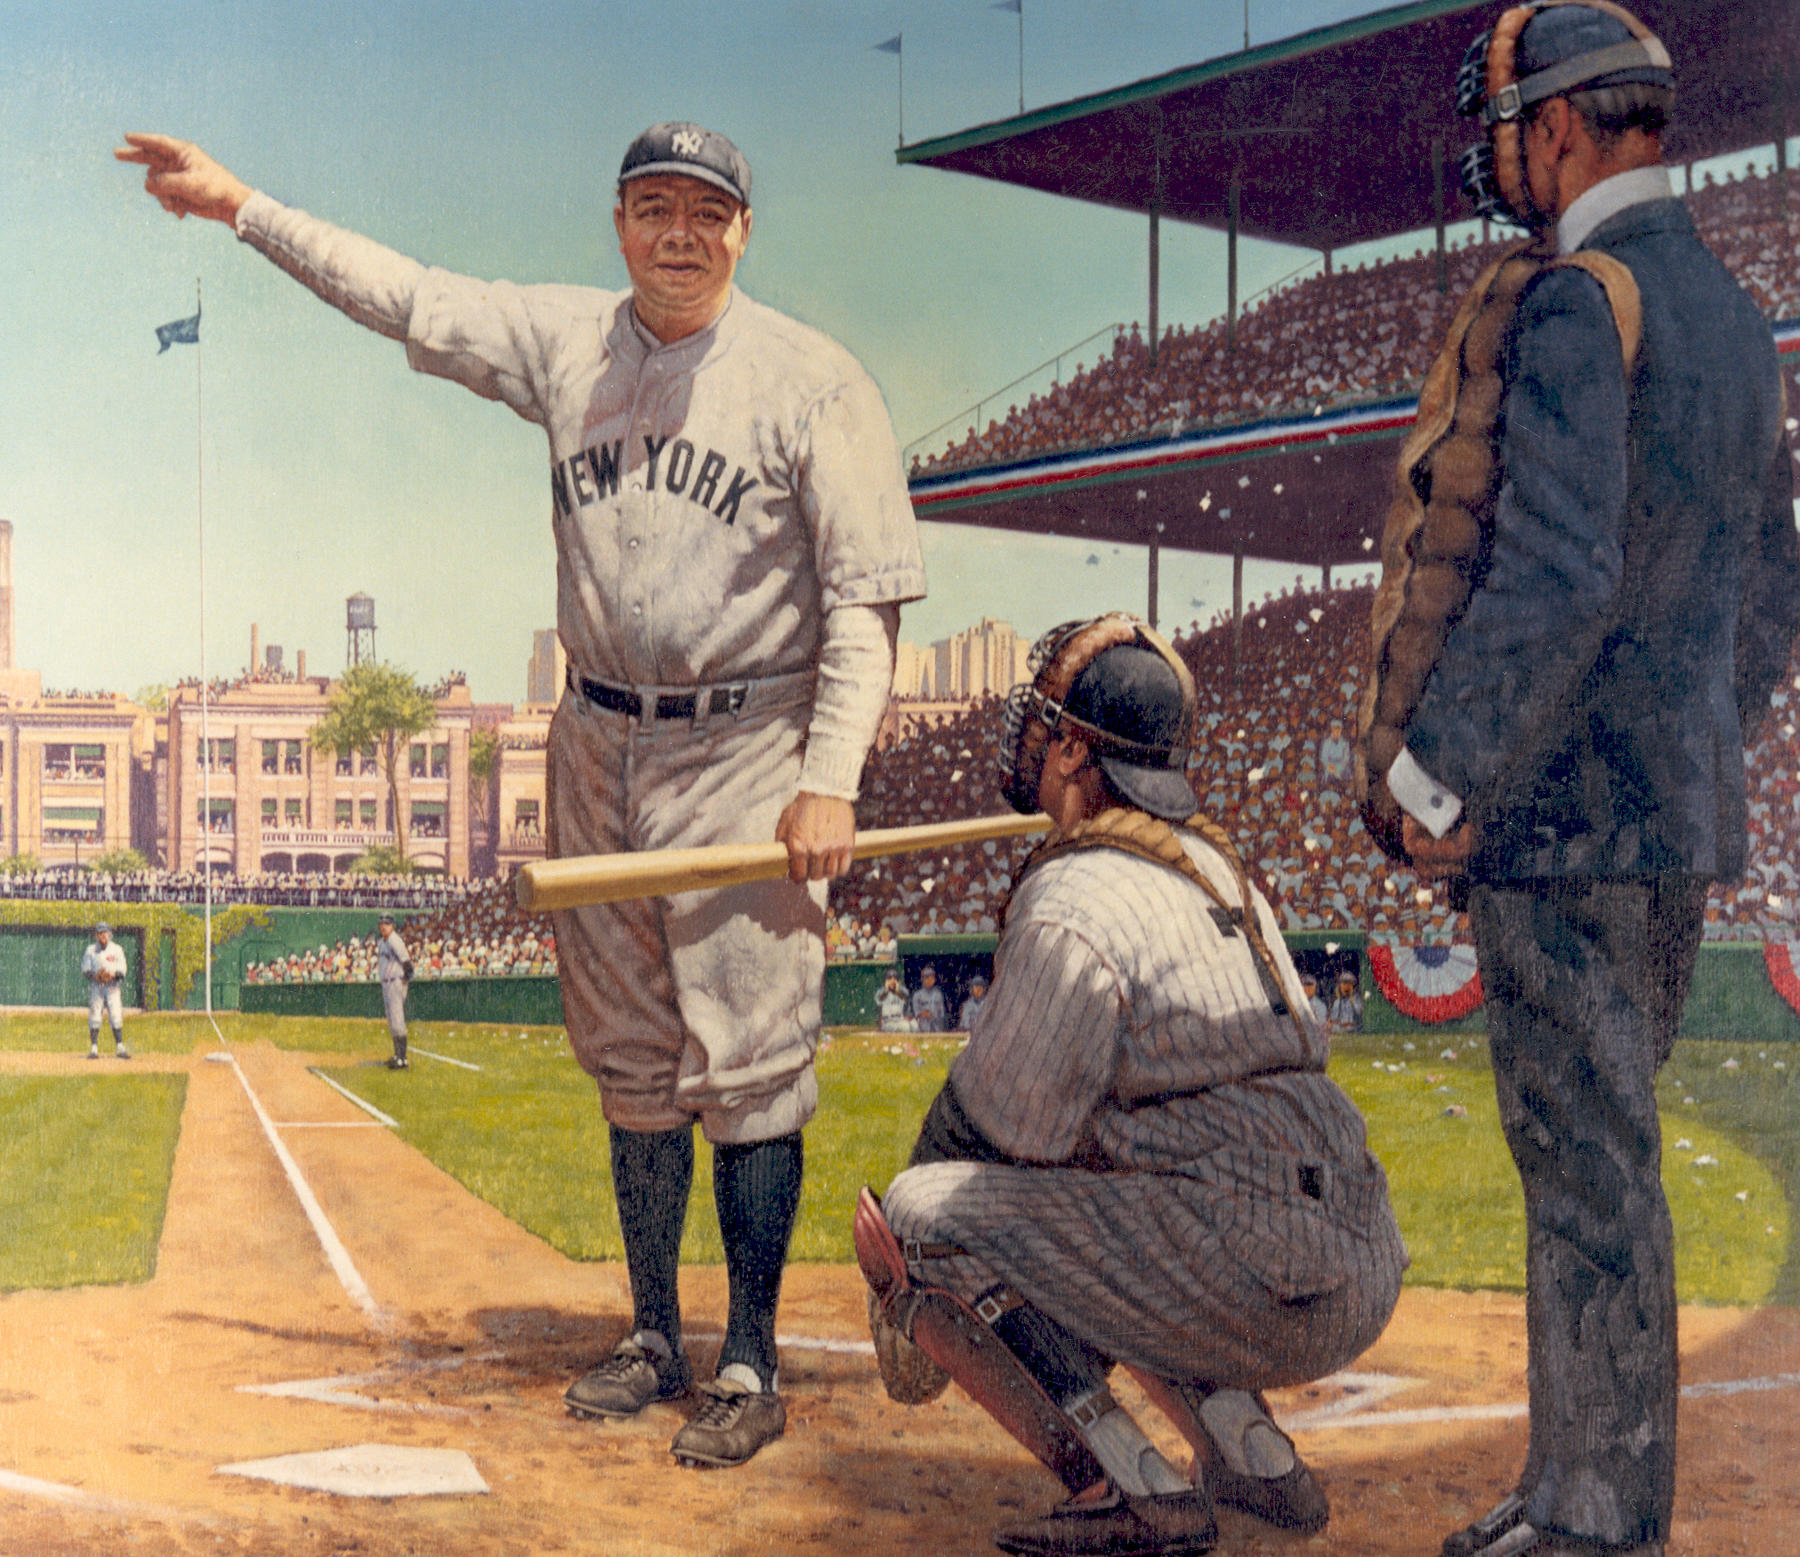 """A detail from Robert Thom's painting depicting Babe Ruth's """"Called Shot"""" in the 1932 World Series, is part of the Hall of Fame's collection of artwork. B-325.76A (National Baseball Hall of Fame)"""